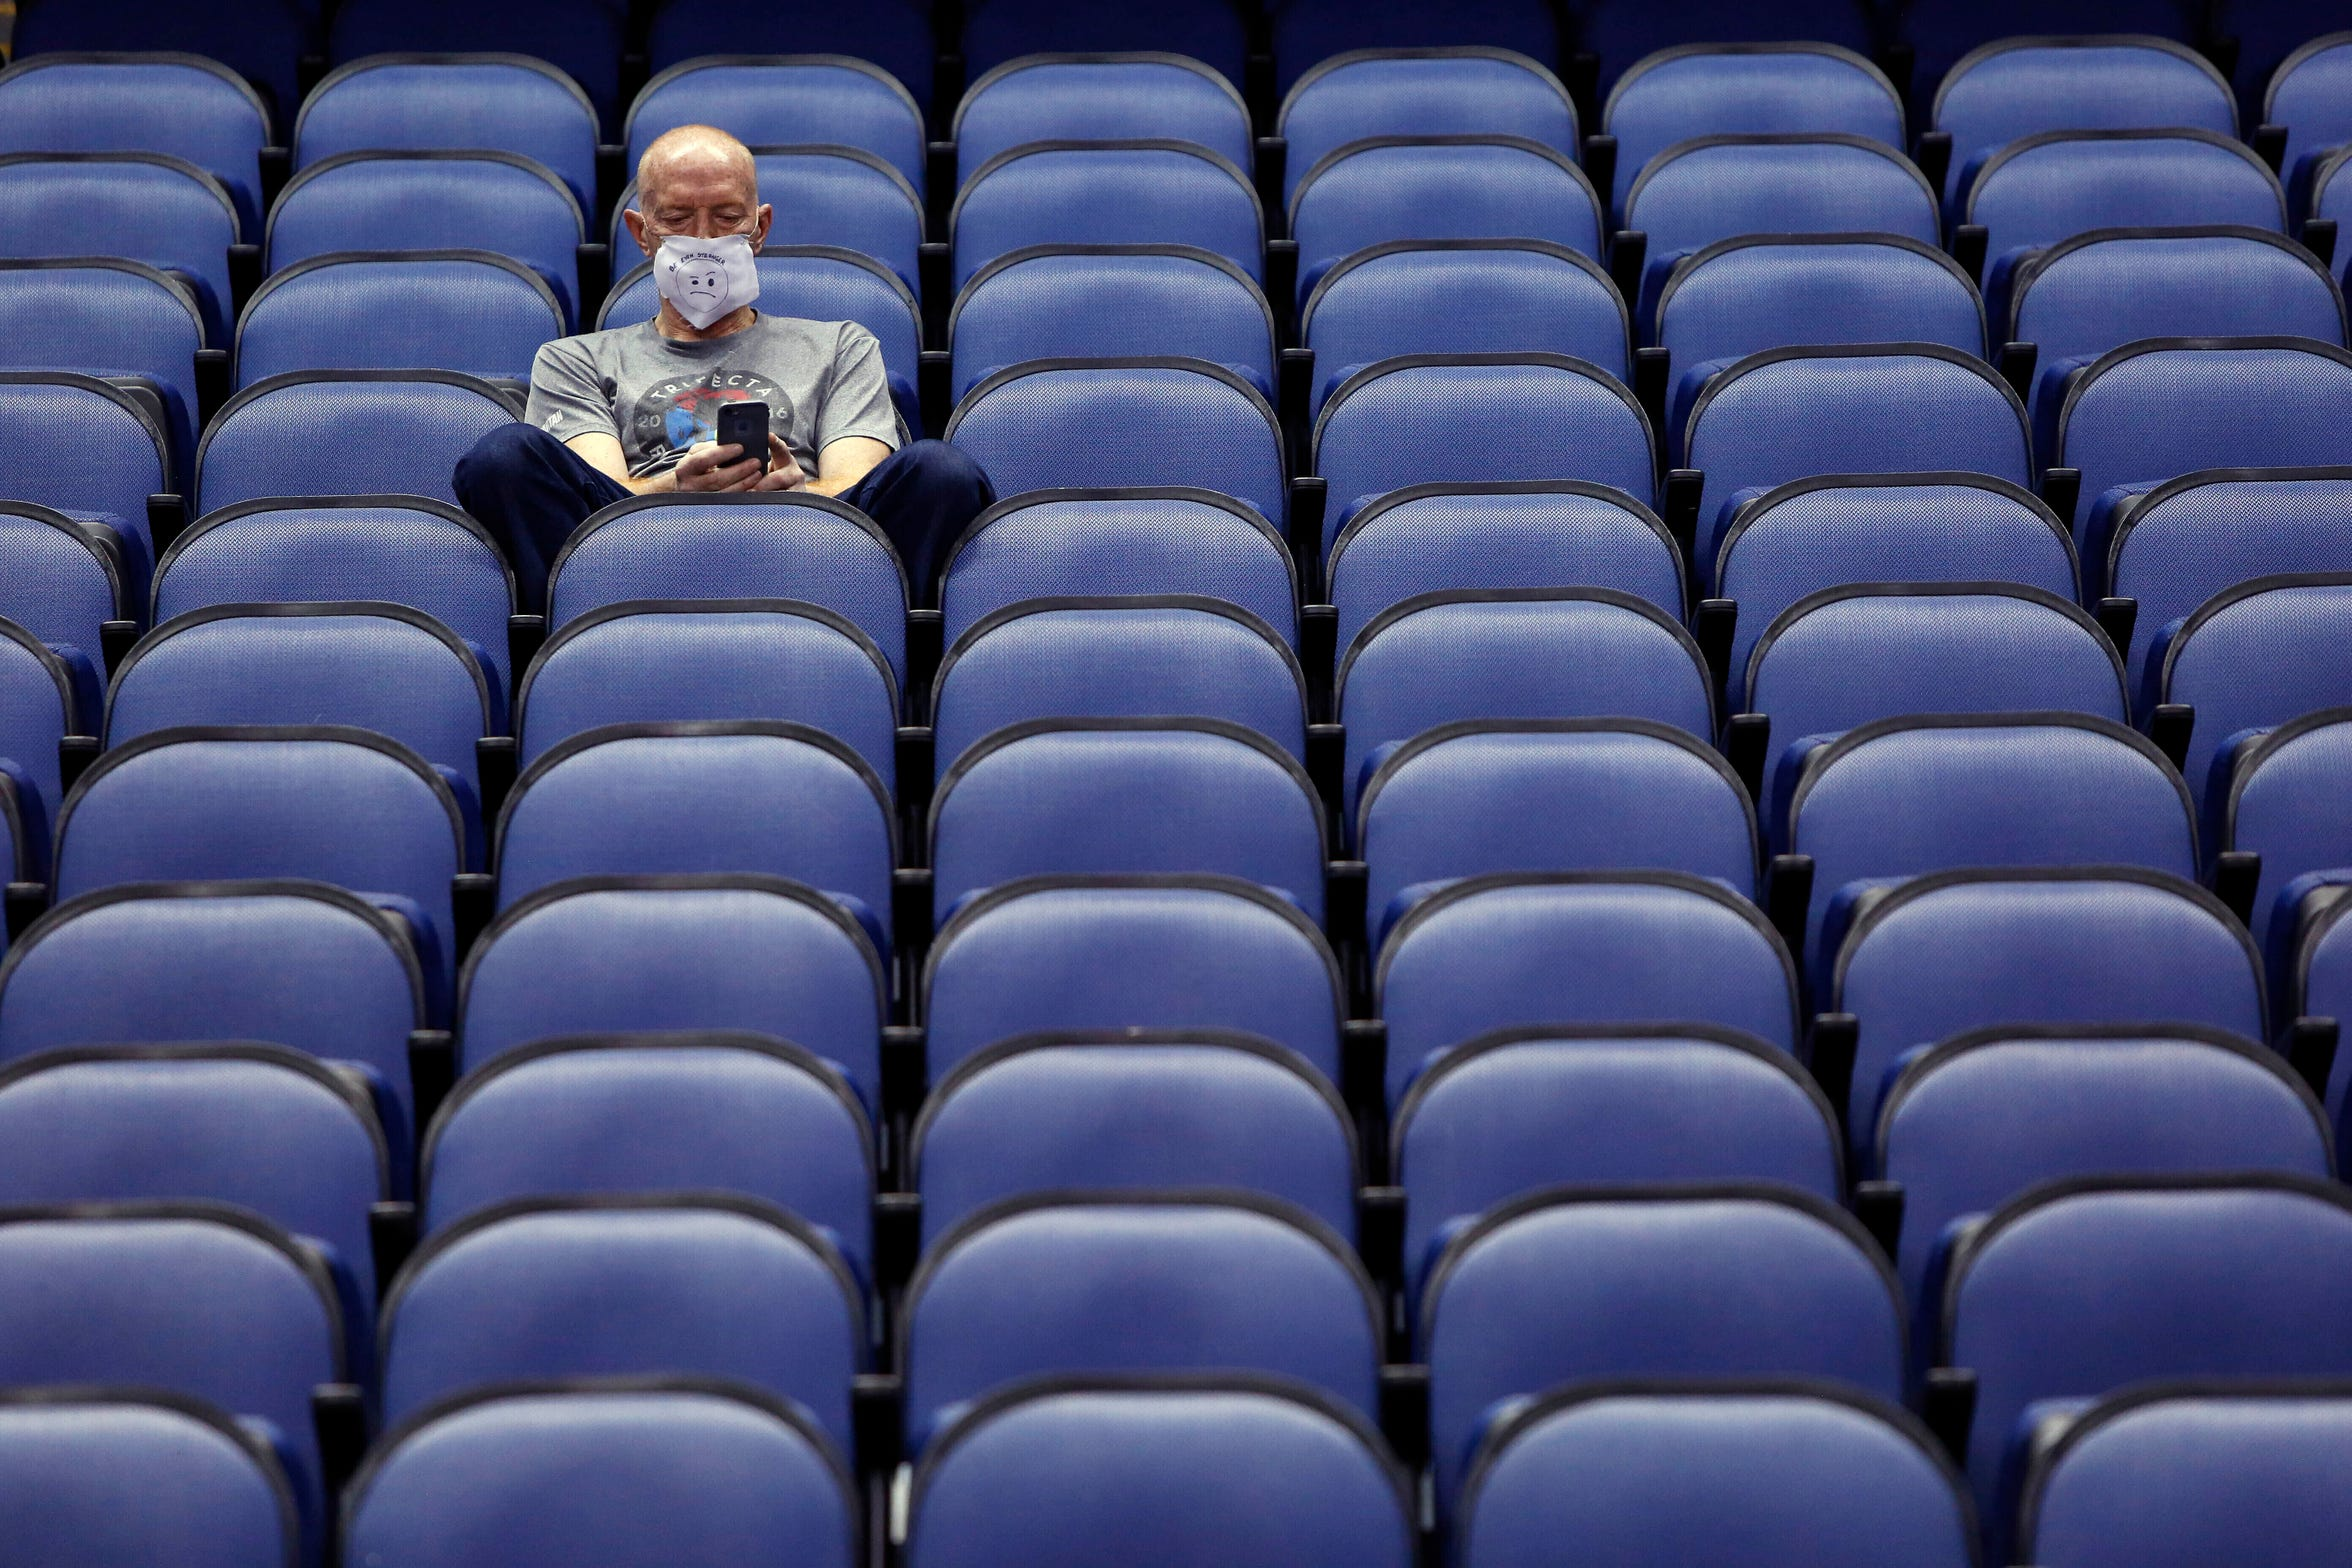 Mike Lemcke, from Richmond, Va., sits in an empty Greensboro Coliseum after the NCAA college basketball games were canceled at the Atlantic Coast Conference tournament in Greensboro, N.C., Thursday, March 12, 2020. (AP Photo/Ben McKeown)